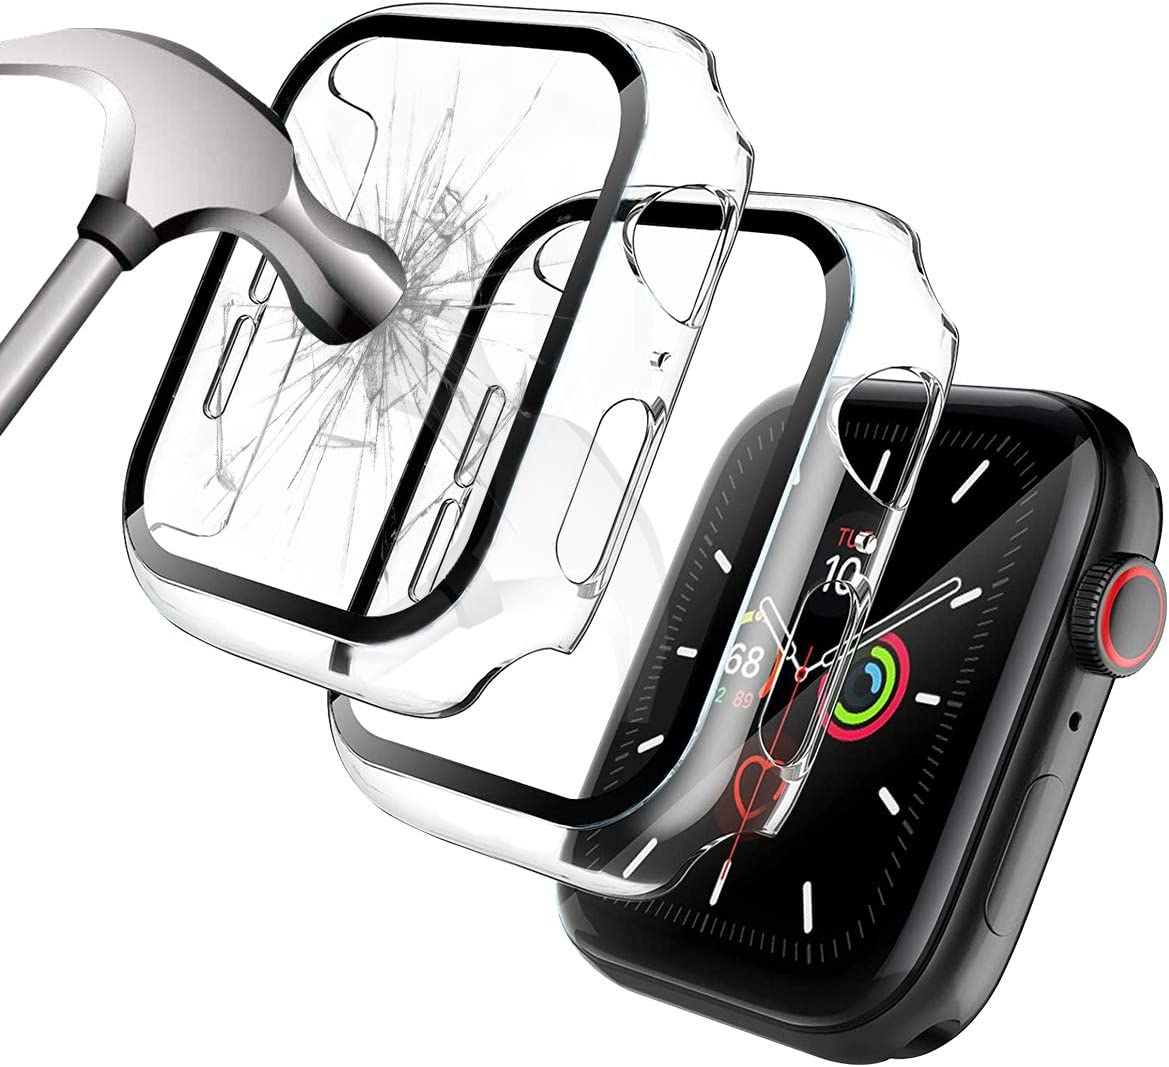 [2 Pack] Case for Apple Watch Series 6/5/4/SE 40mm Built in Tempered Glass Screen Protector, Miesherk STOCK Hard PC Bumper Full Coverage Shockproof Protective Cover for iWatch 40mm - Clear